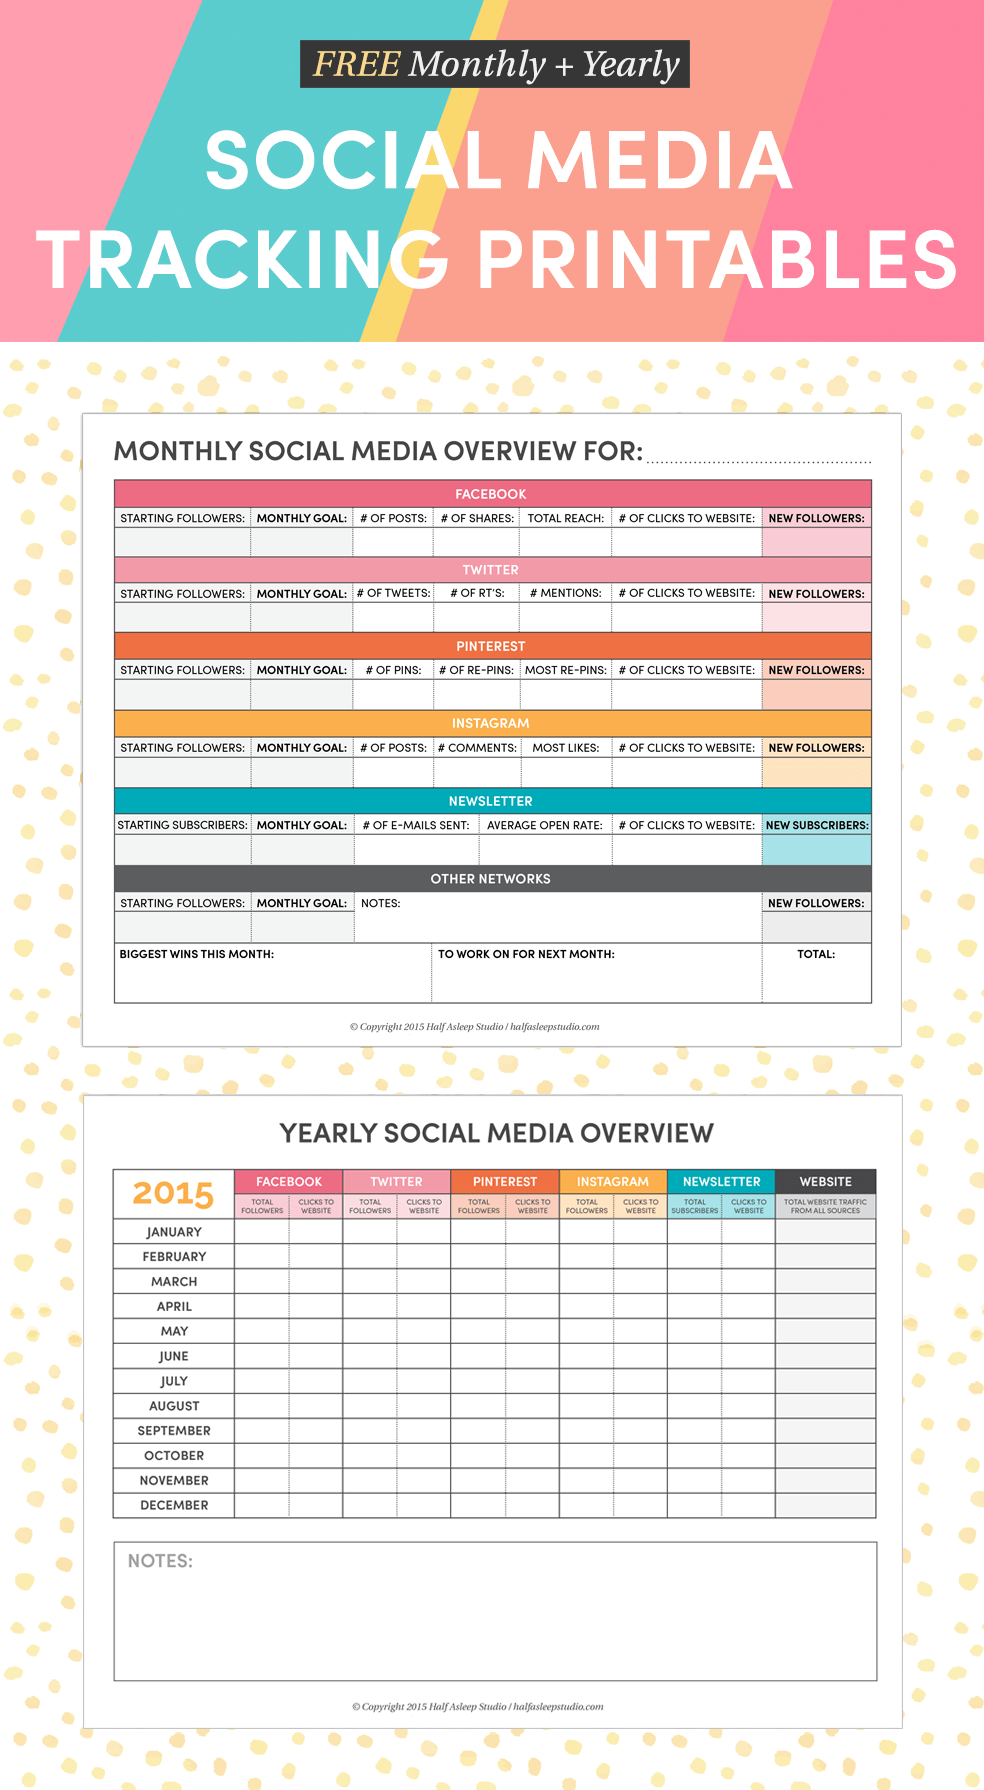 FREE Monthly and Yearly Social Media Tracking Printables